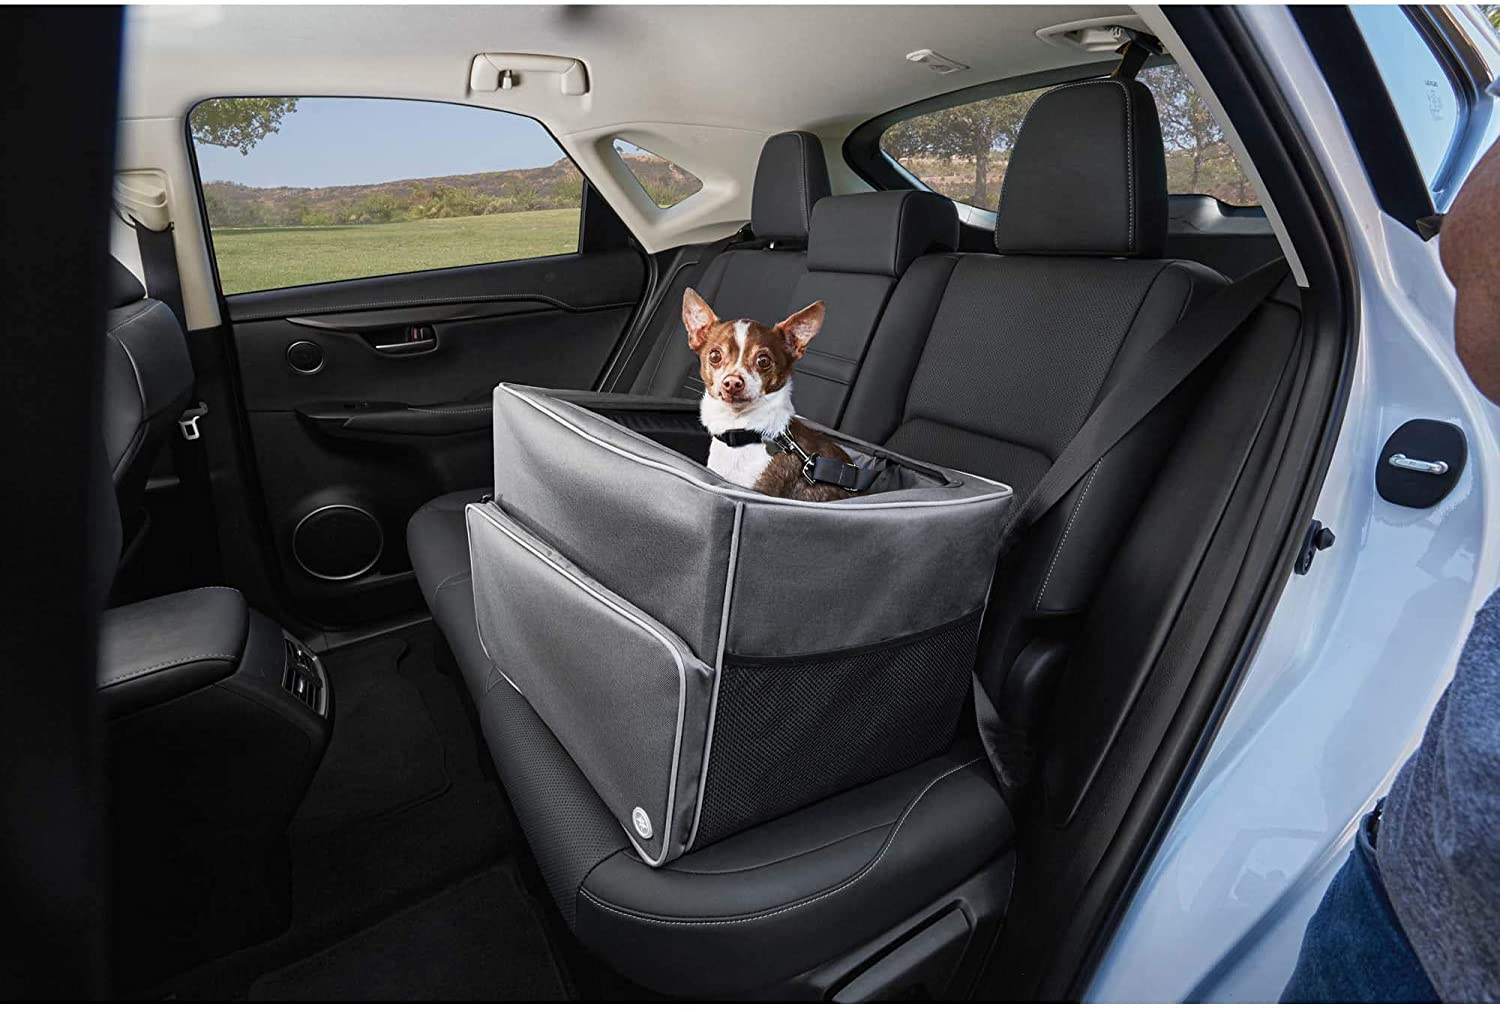 Petco Brand - Good2Go Auto Booster Seat 13 Large special price in Gray 17 W x H Quality inspection